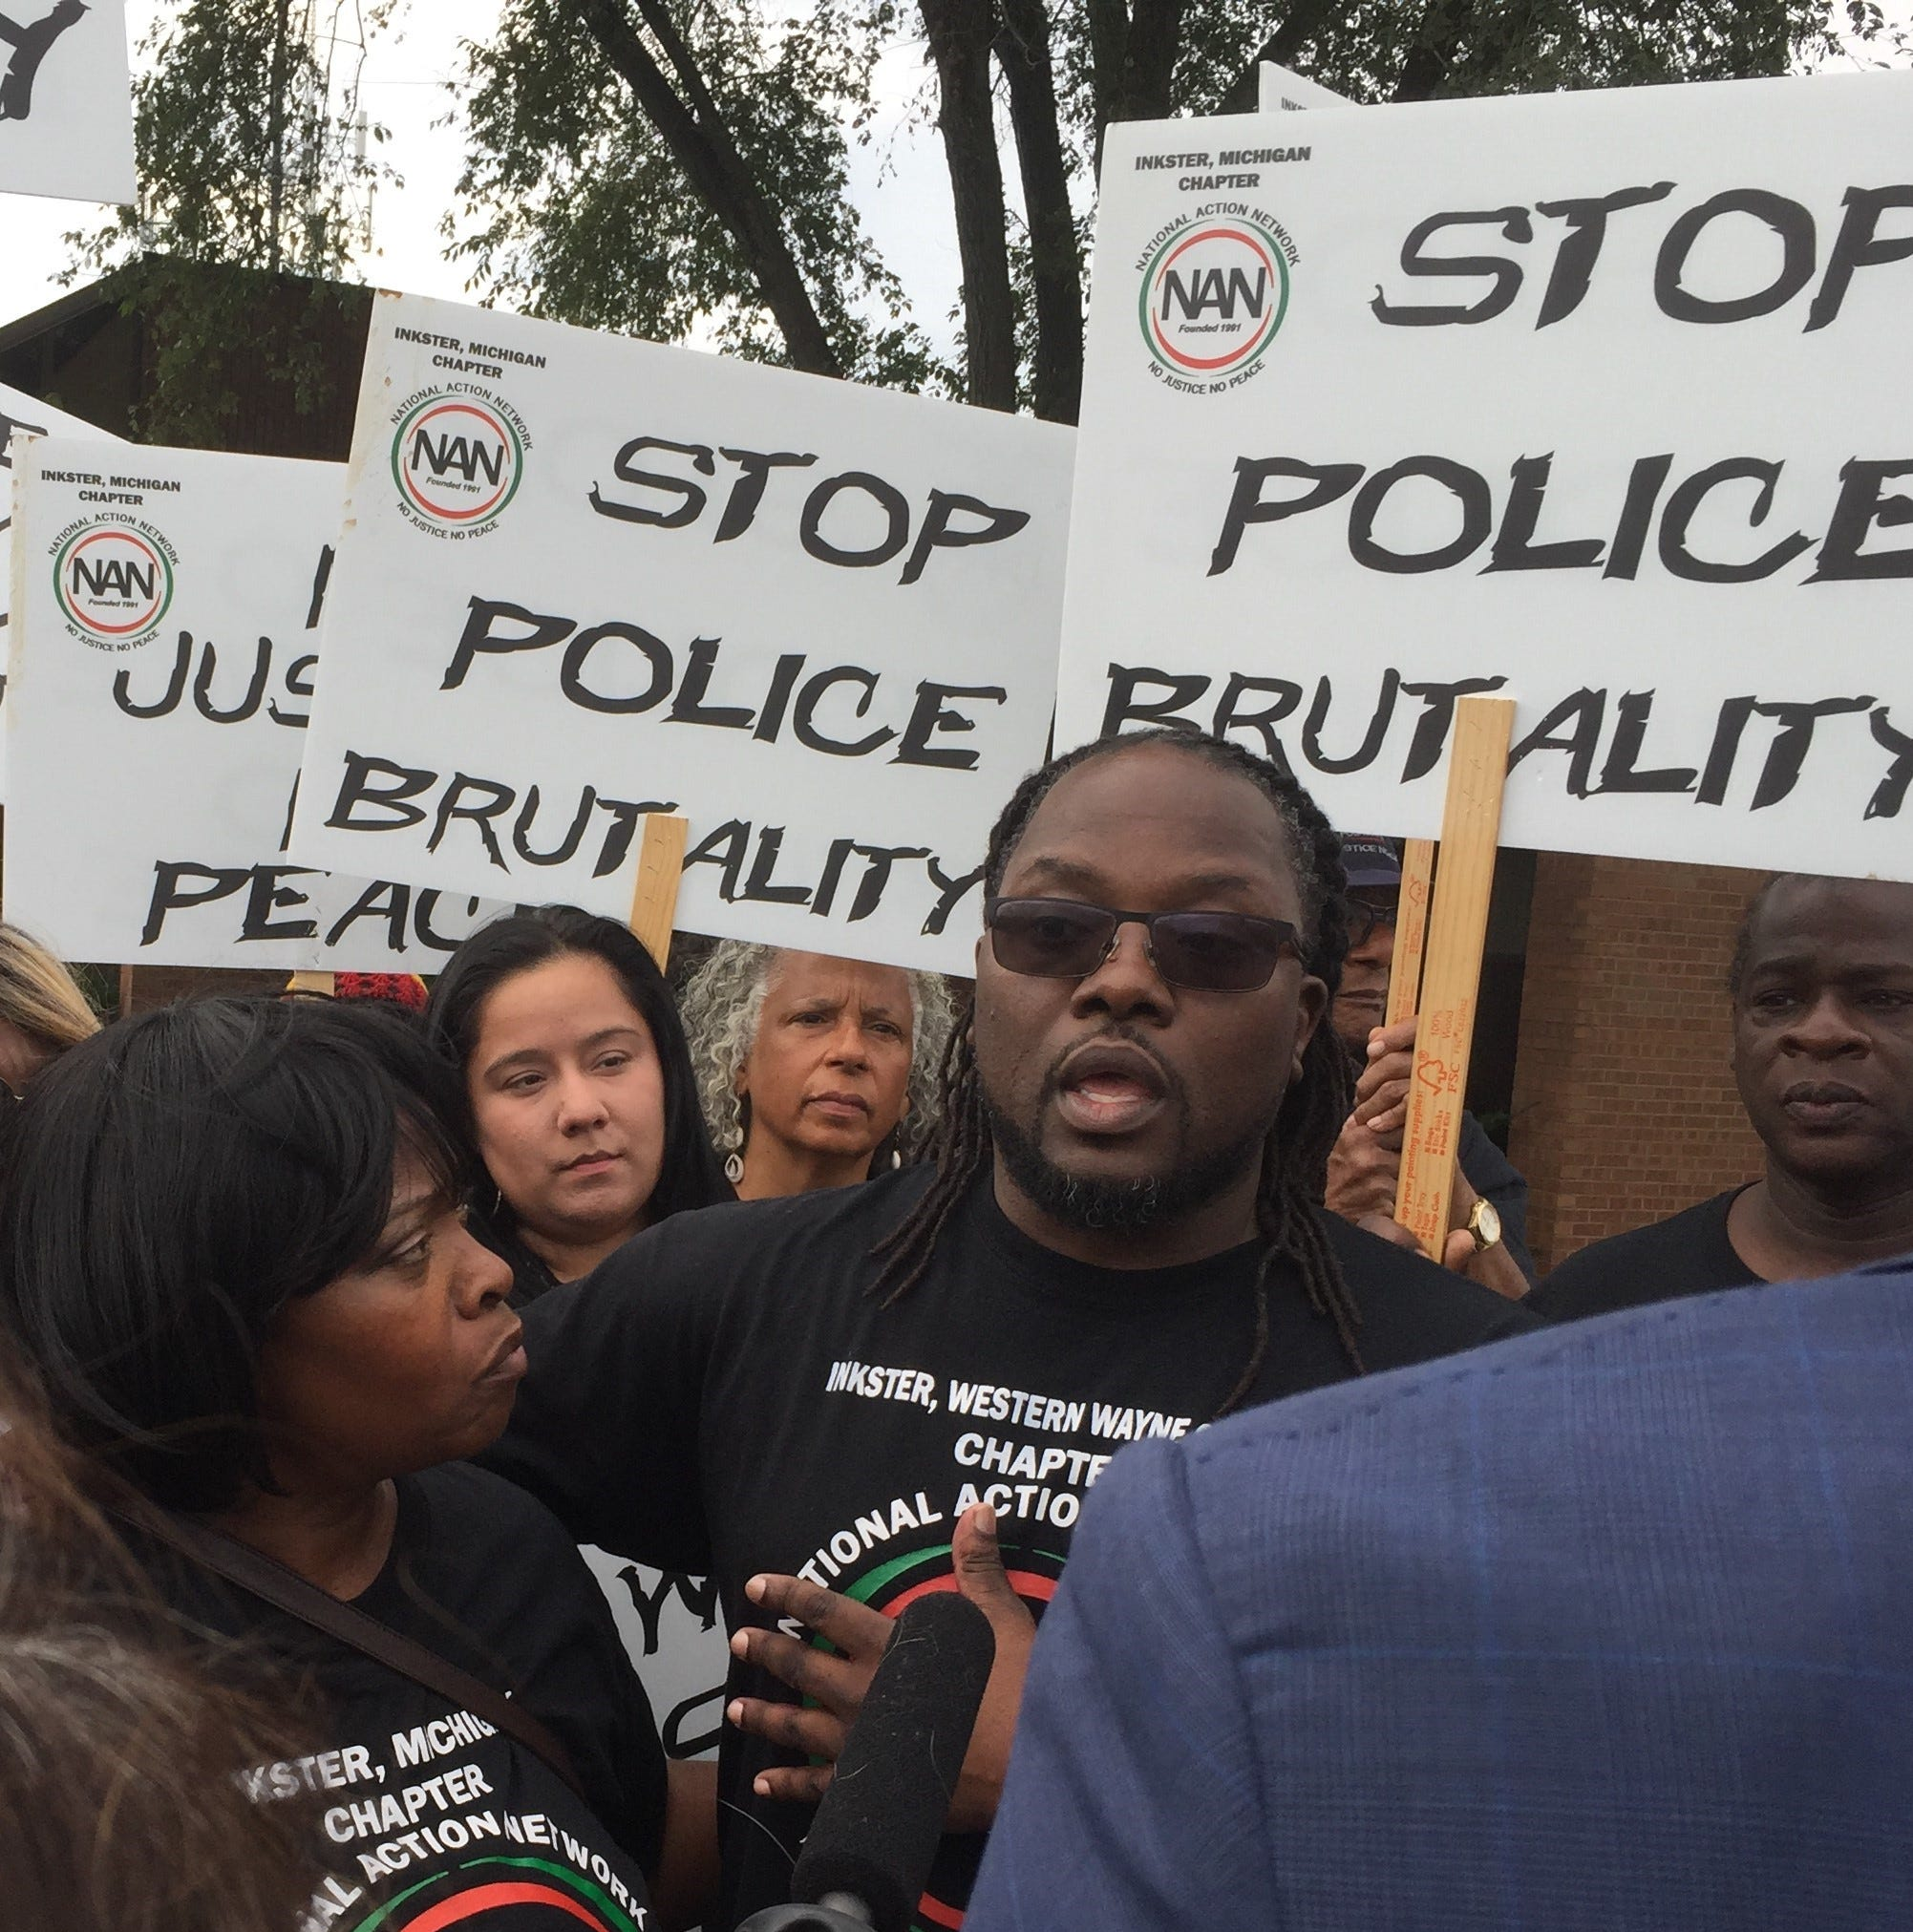 Claiming police bias, excessive force, protesters announce march in Westland